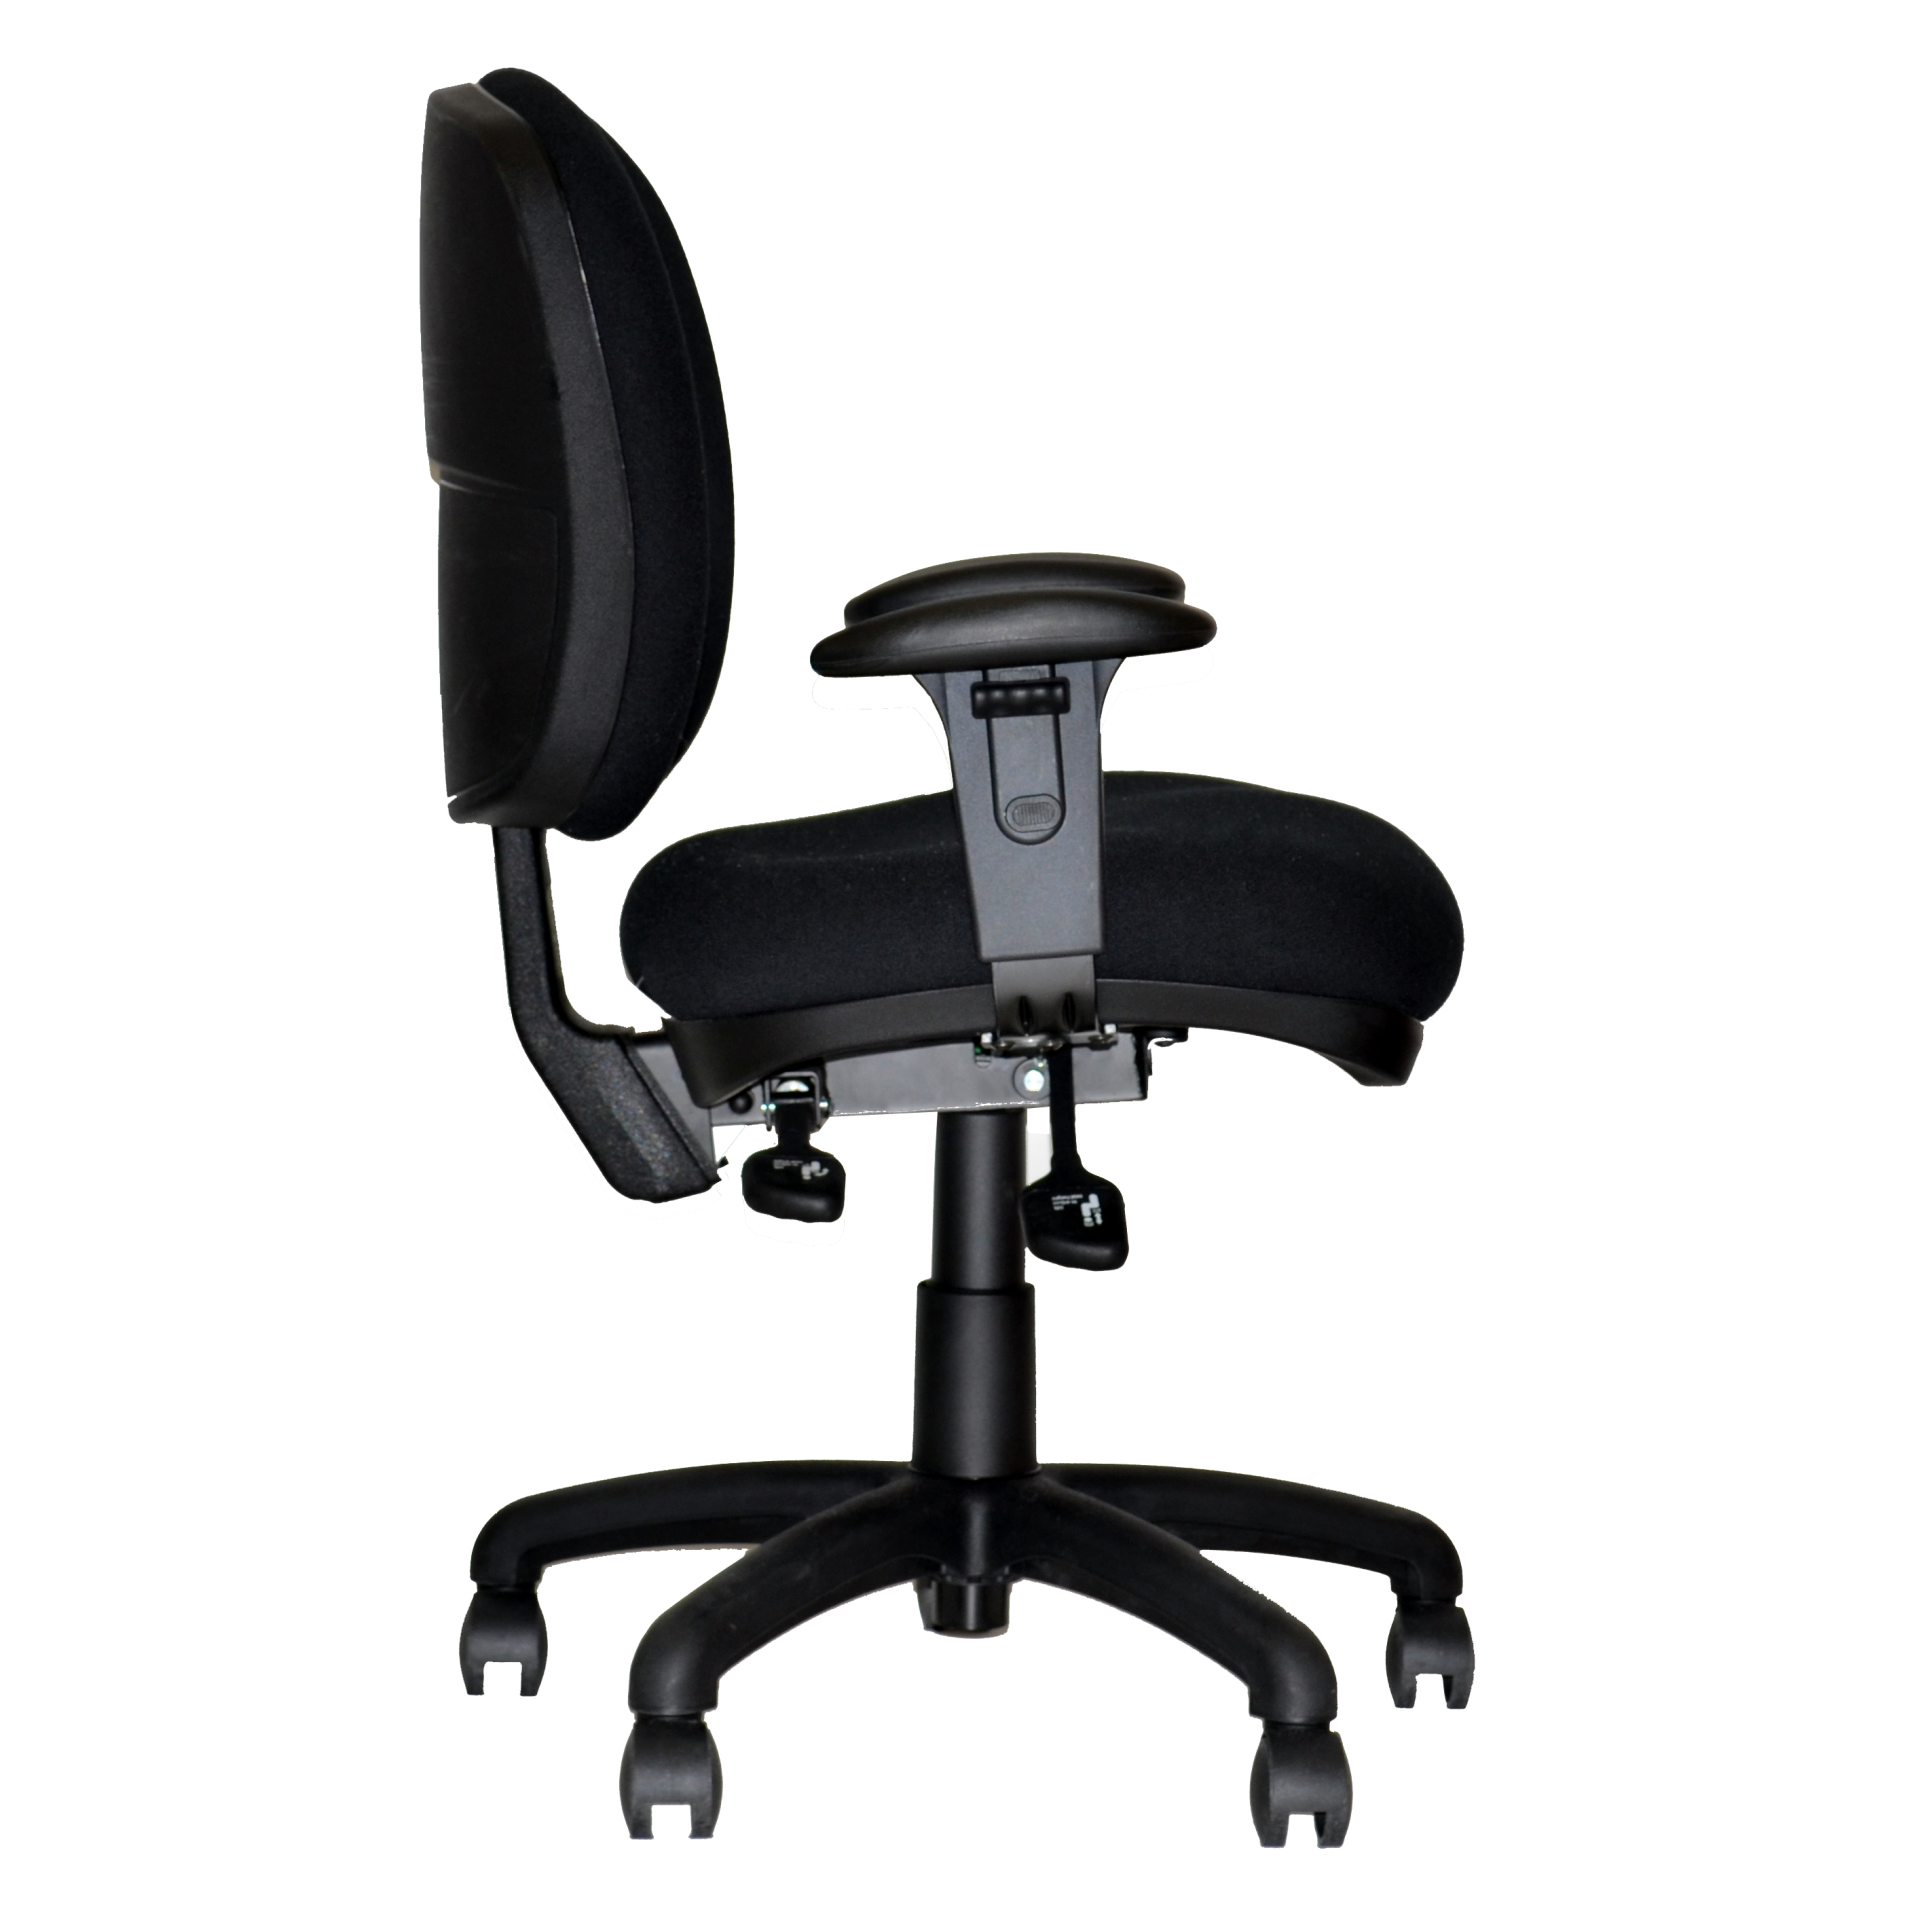 Direct Ergonomics | Sydney Office Furniture | Ergonomic Furniture | Ergonomic Seating | Excutive and Task Seating | Meeting Room Chair | Ezone Plus